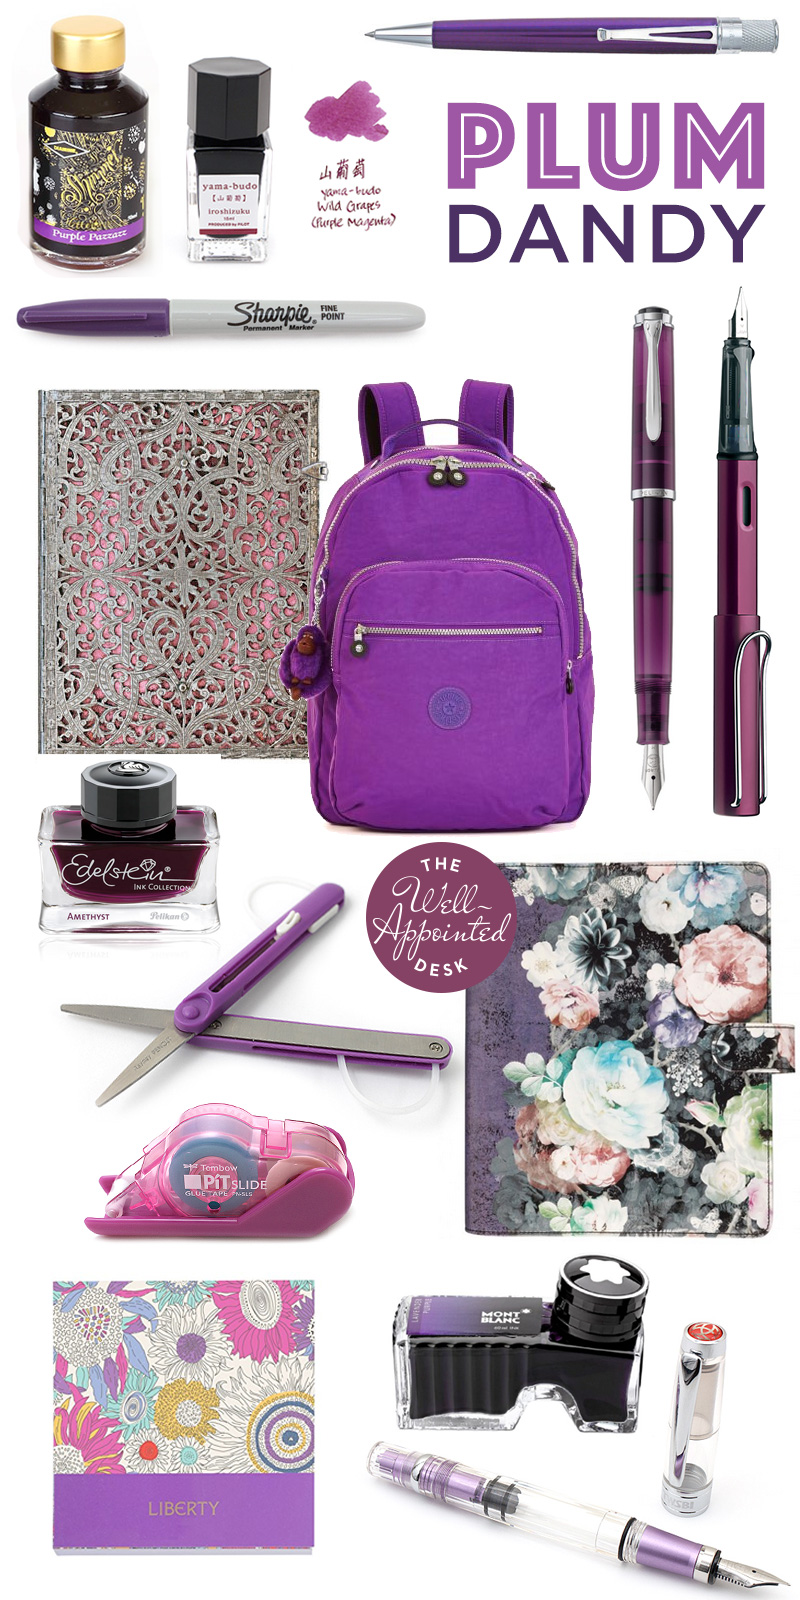 Fashionable Friday: Plum Dandy